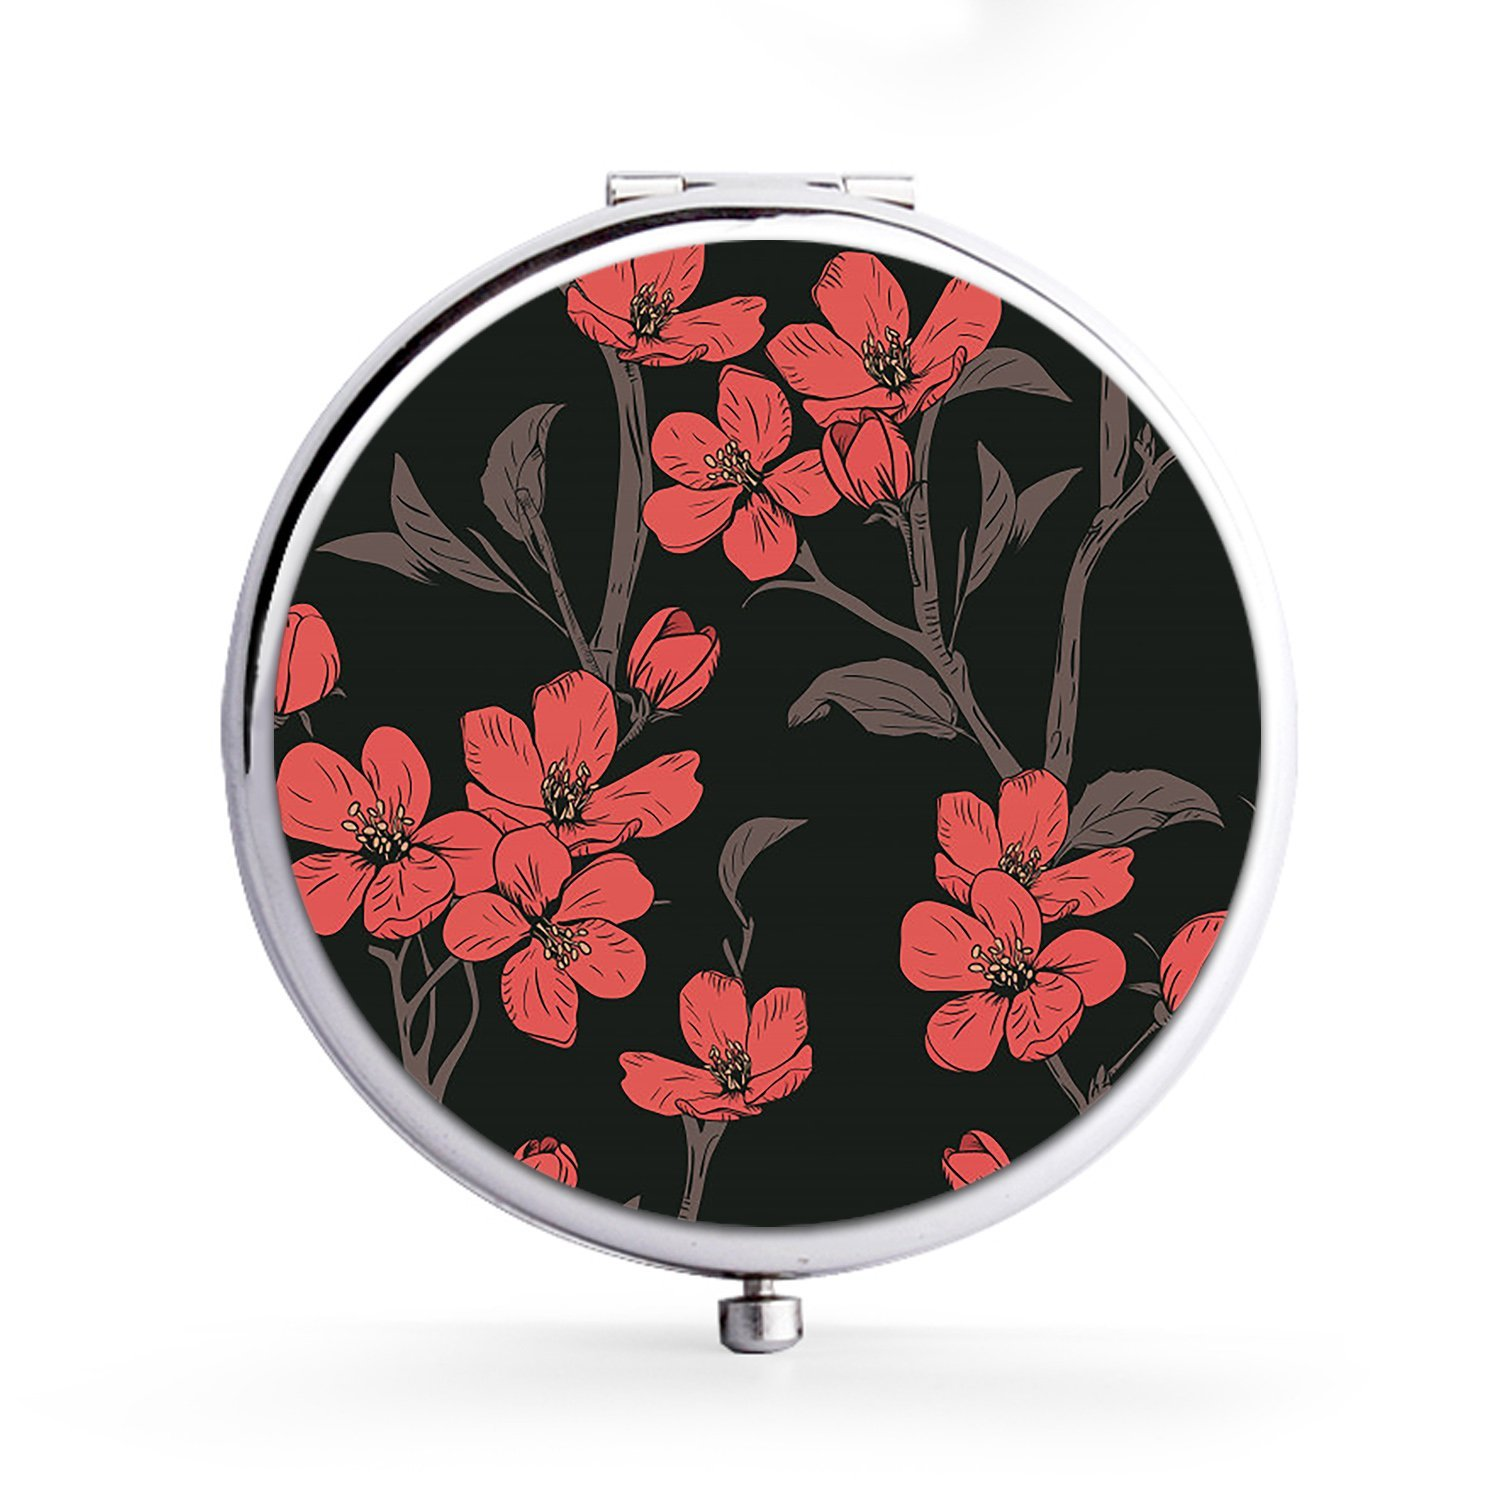 XIANN Mirror Makeup Mini Mirror Handhold Double Side Compact Travel Mirrors - Blooming Tree